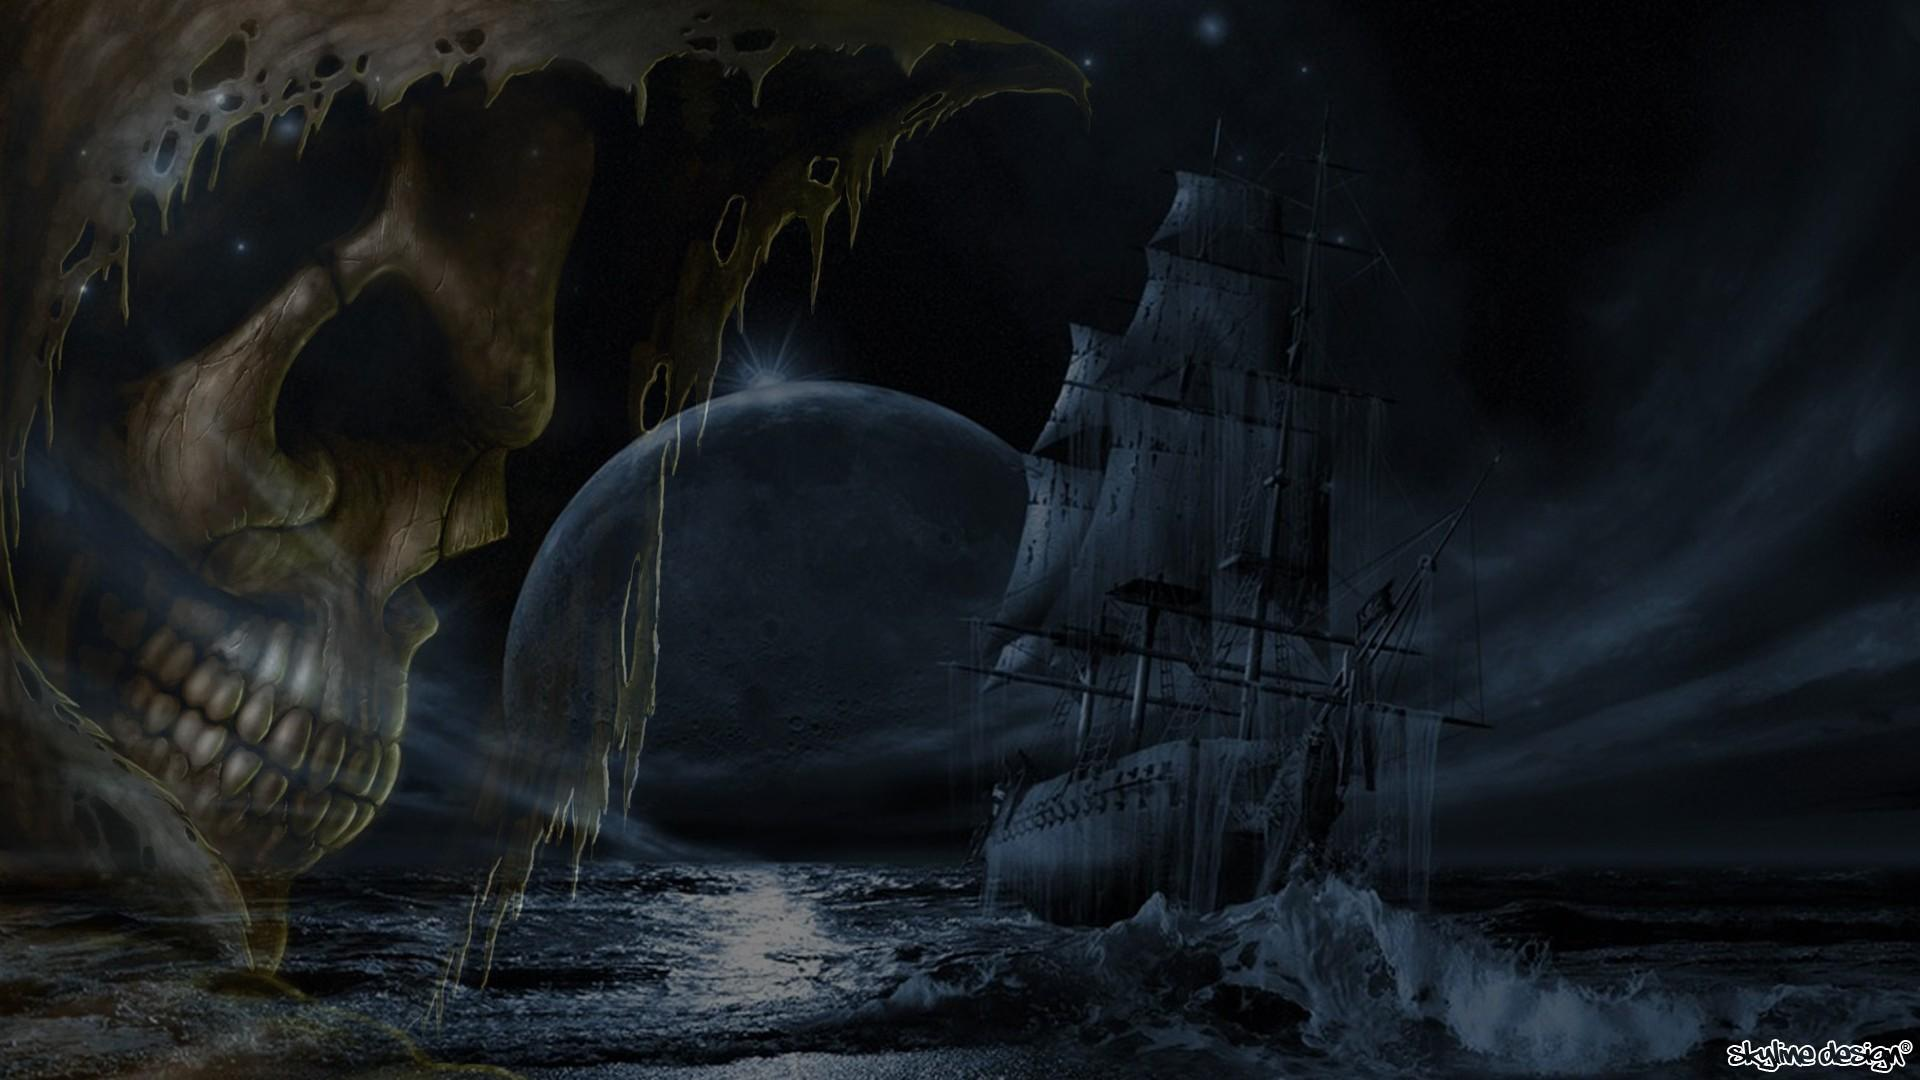 Skulls moon ships ghosts digital art ghost ship wallpaper 78329 1920x1080